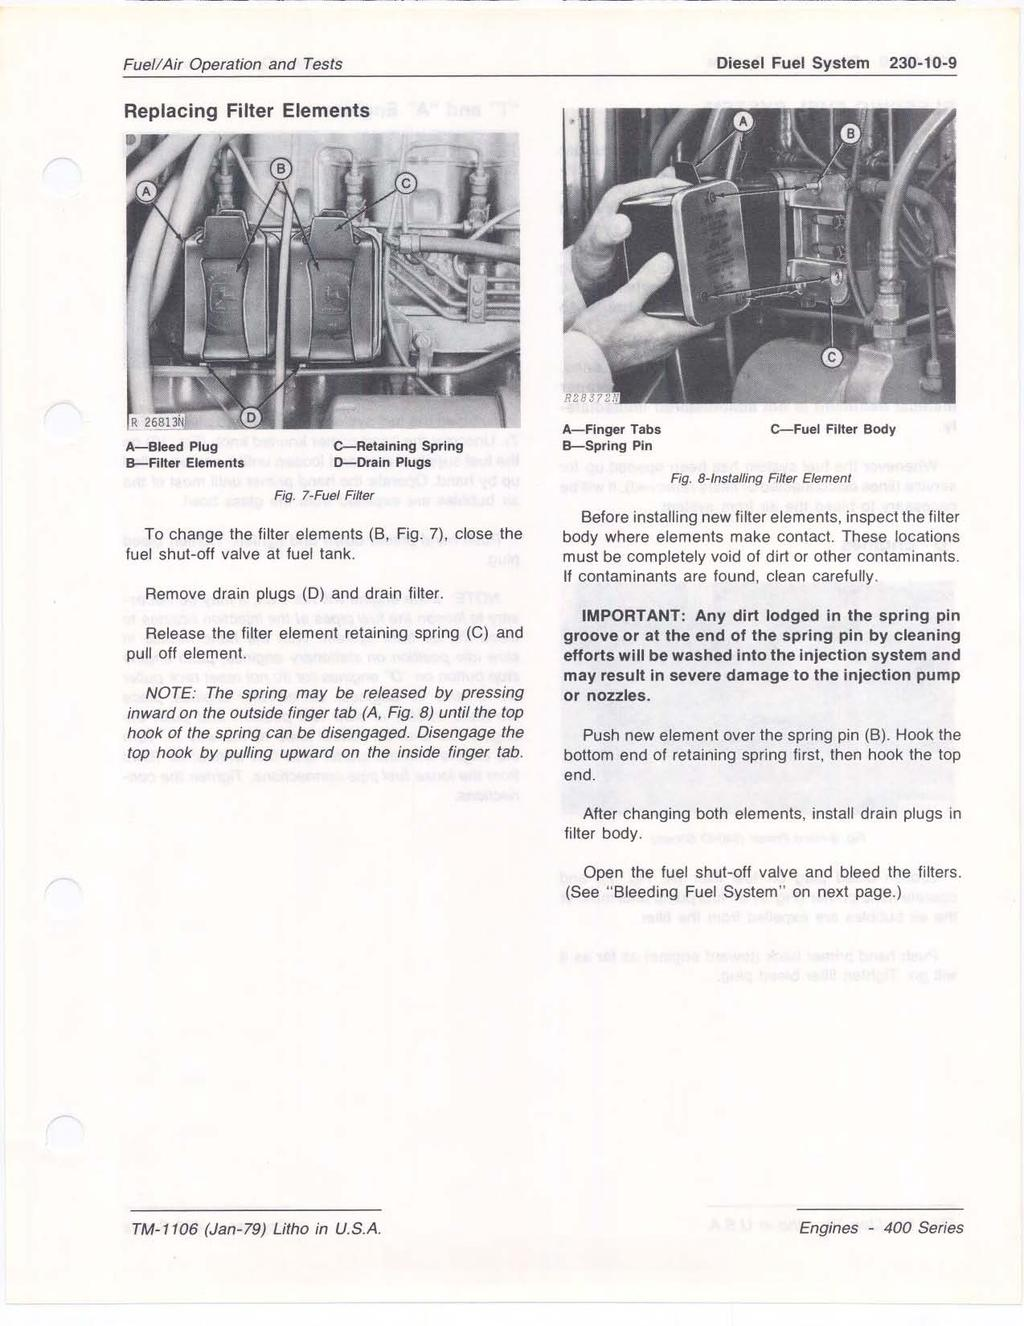 Section 230 Fuel Air Operation And Tests Contents Of This Pdf 1989 300zx Filter Removal Diesel System 10 9 Replacing